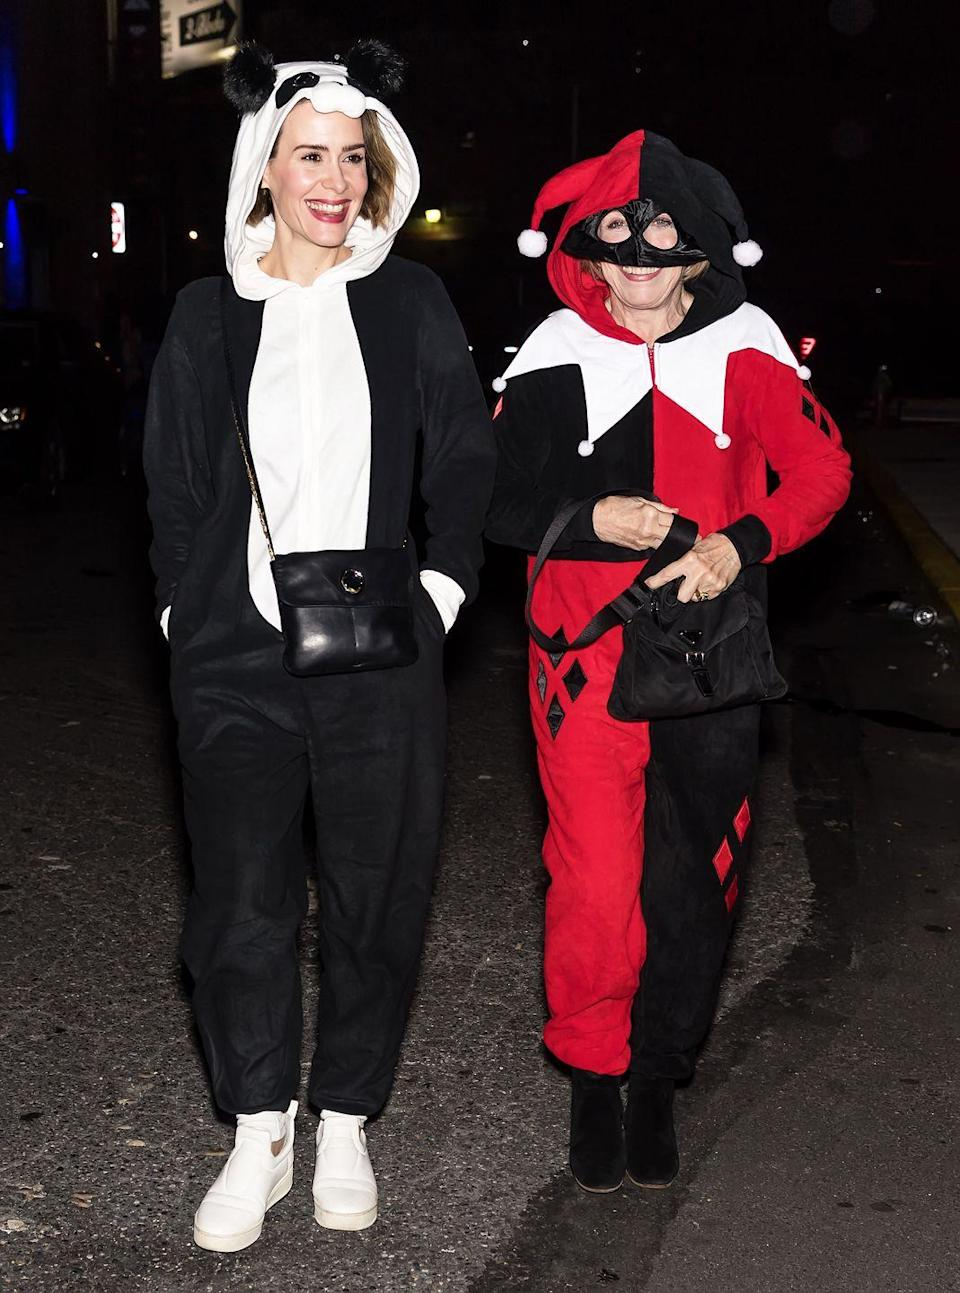 <p>The actresses may not be matching, per se, but both women donned incredibly cozy onesies for a Halloween party in 2017. Note to self: Wear a onesie this year.</p>